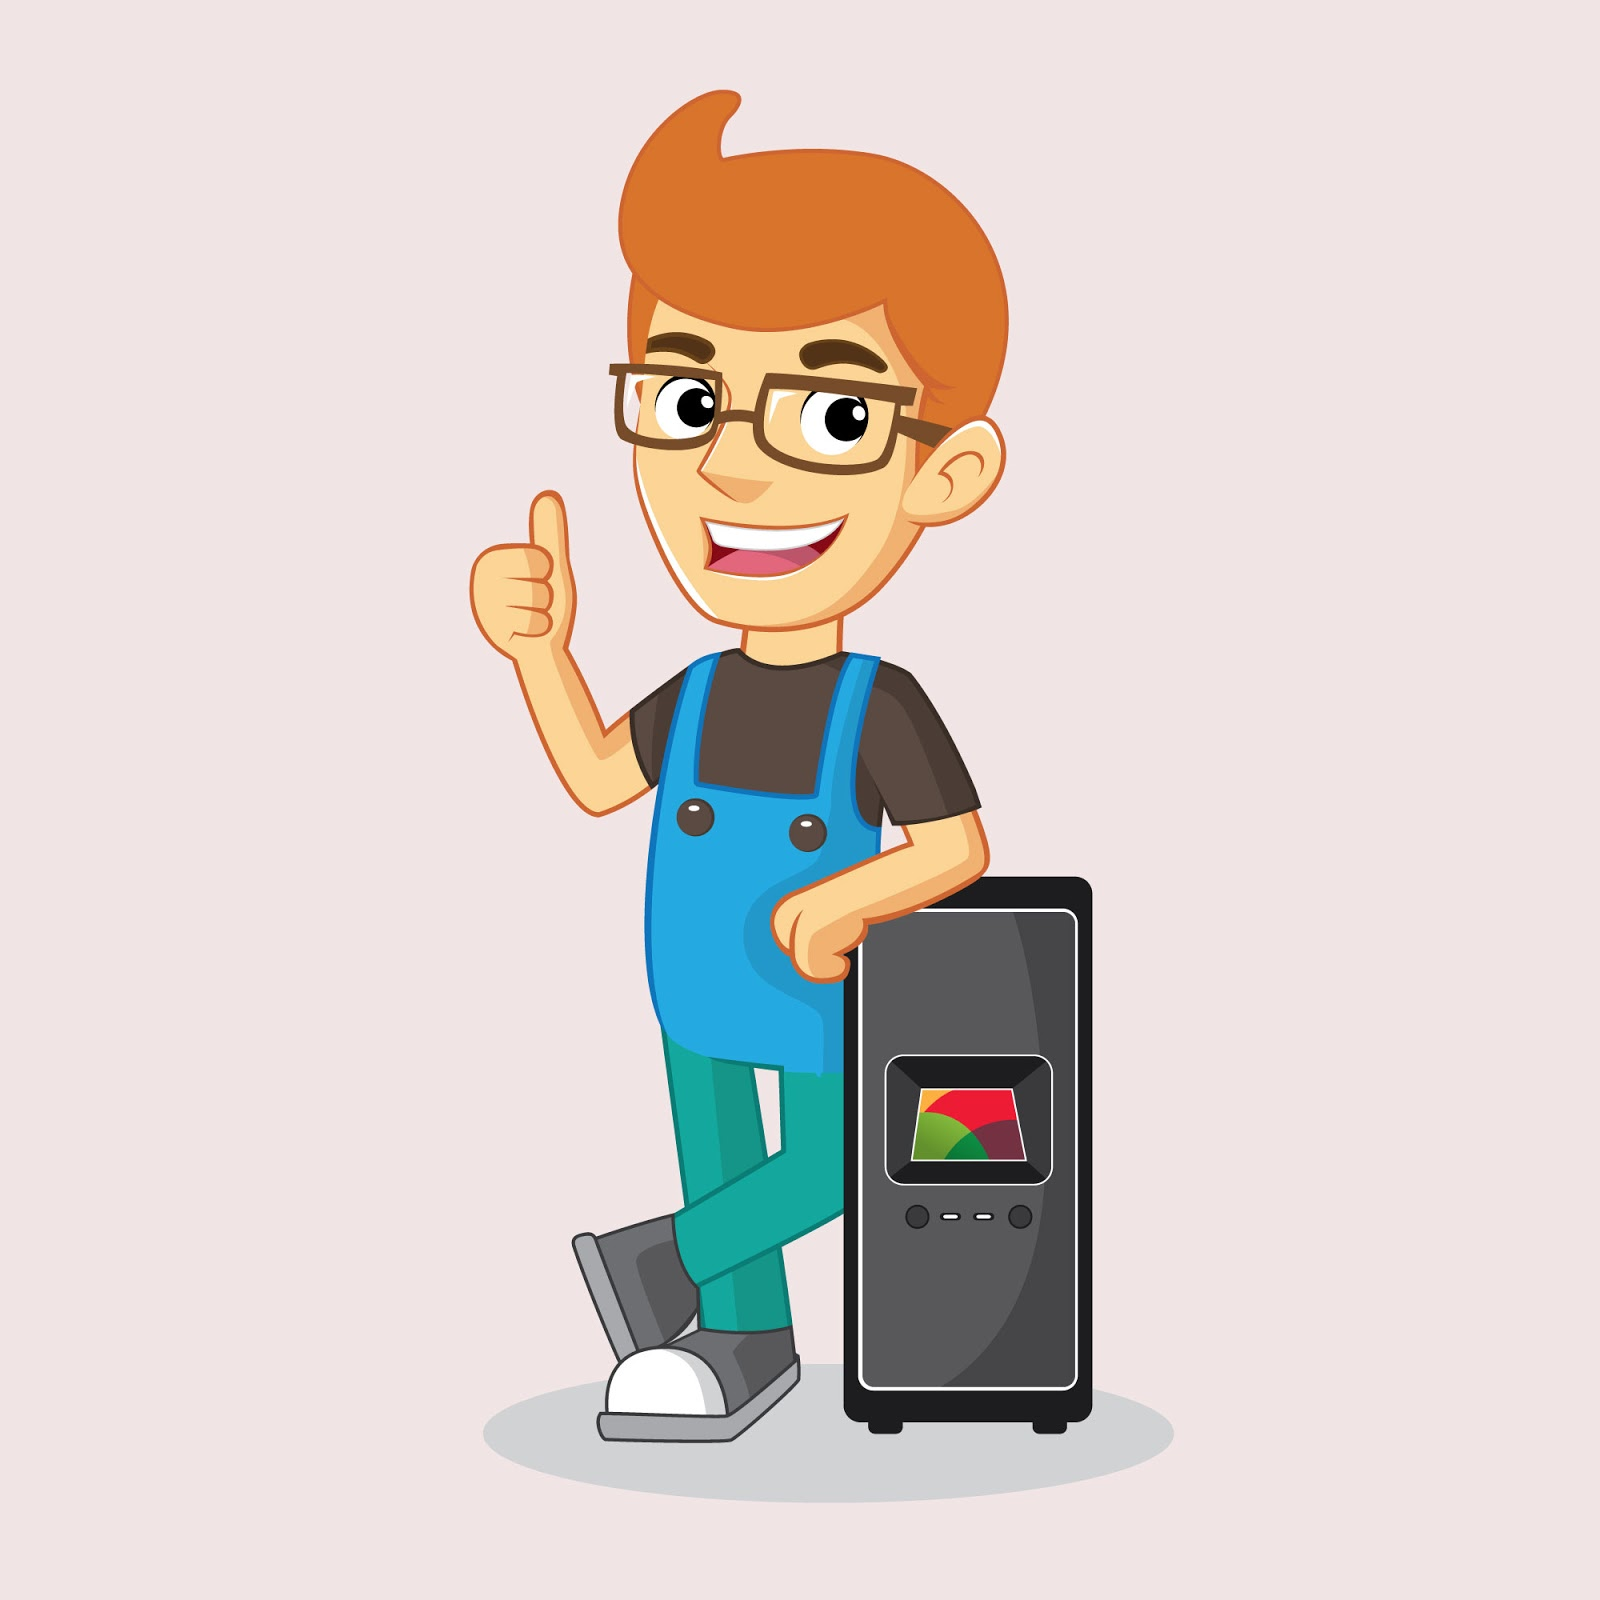 Computer Mechanic Computer Free Download Vector CDR, AI, EPS and PNG Formats